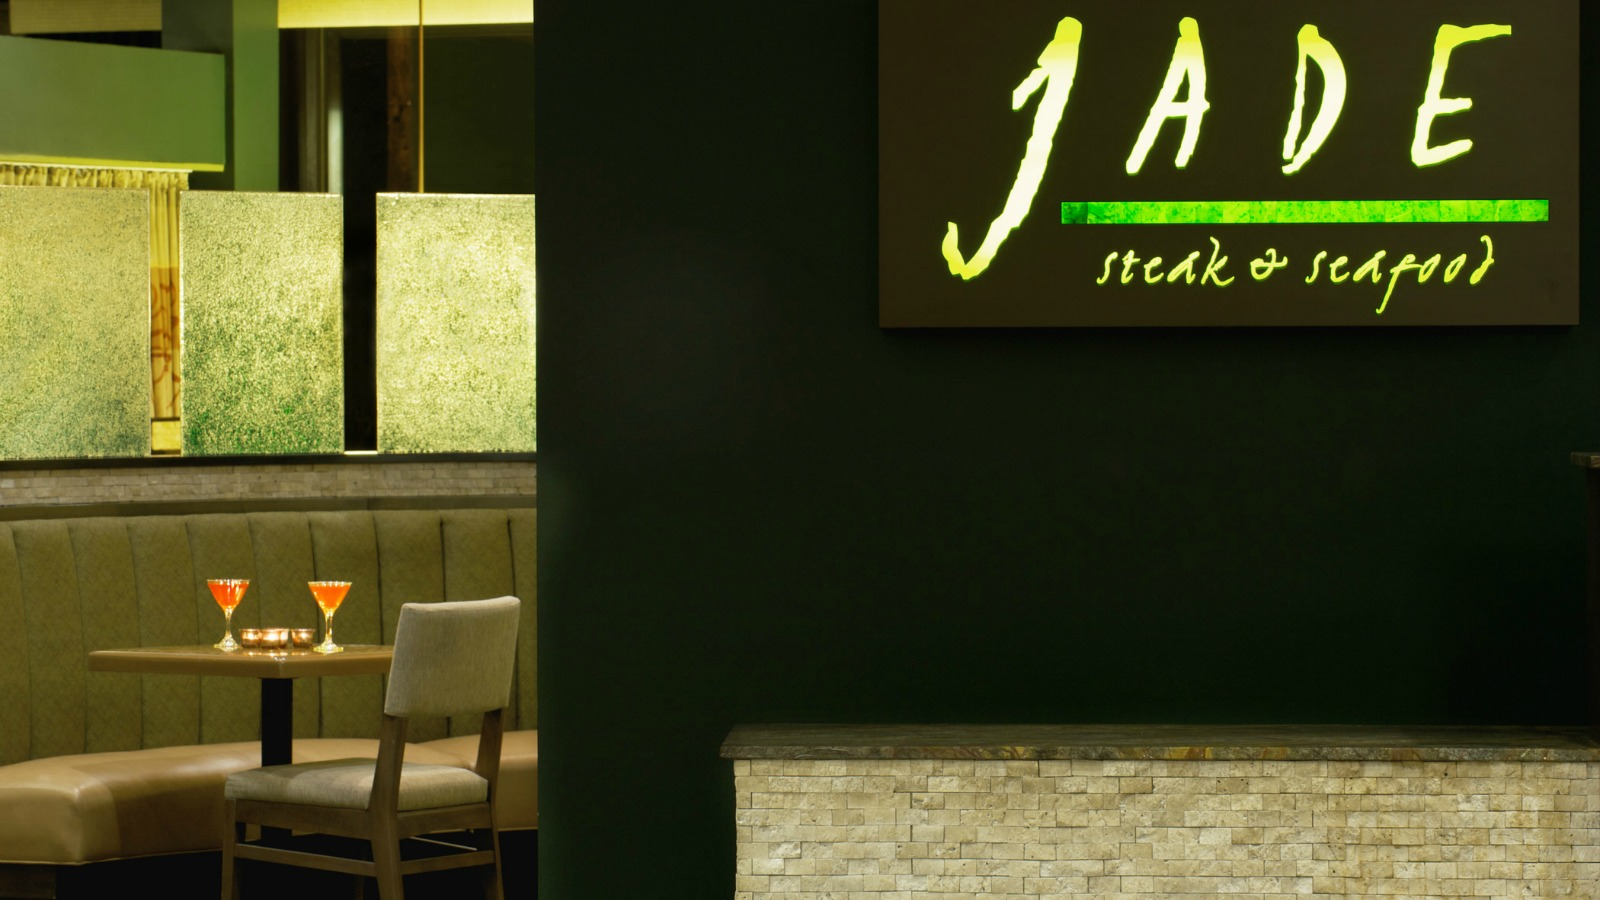 Anchorage Meeting Facilities - Jade Restaurant